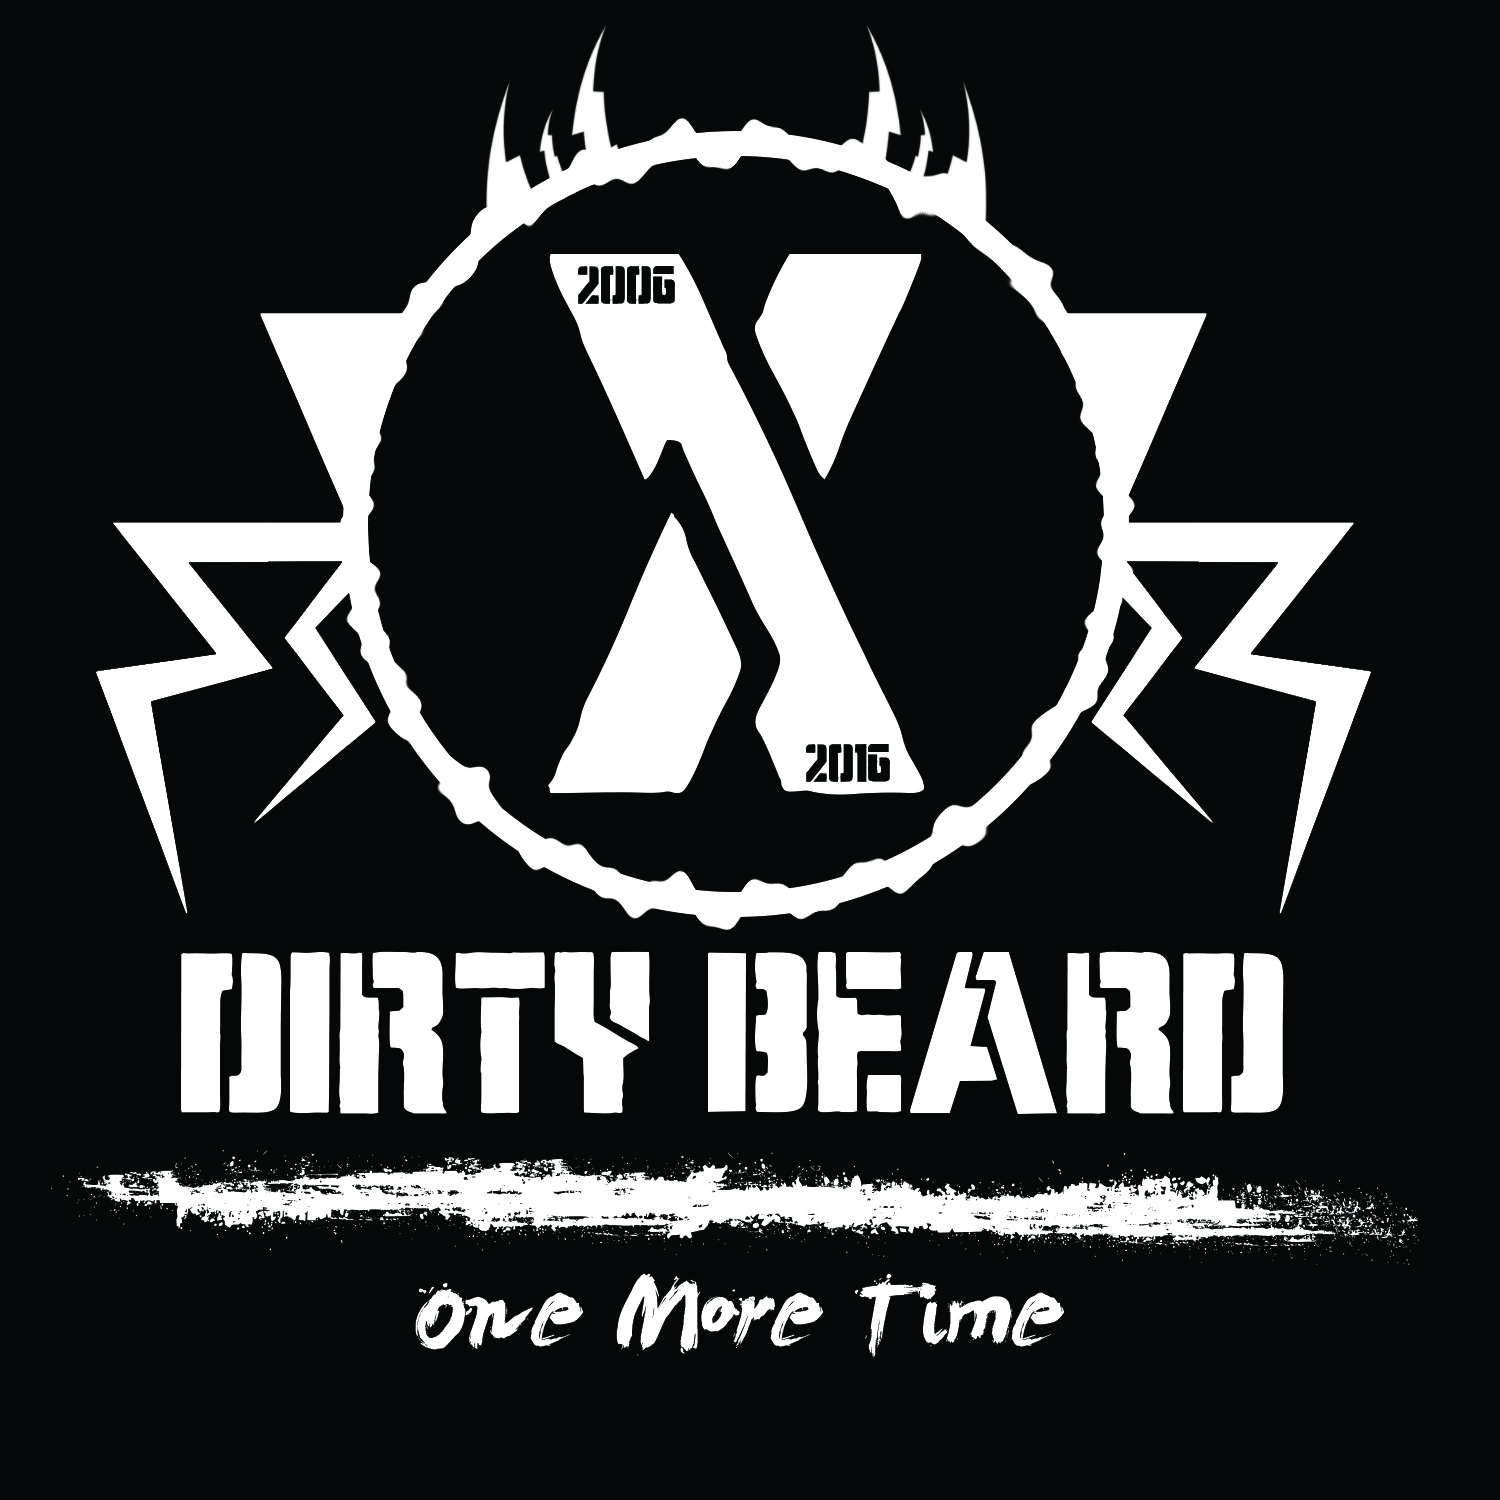 Logo Design Dirty Beard